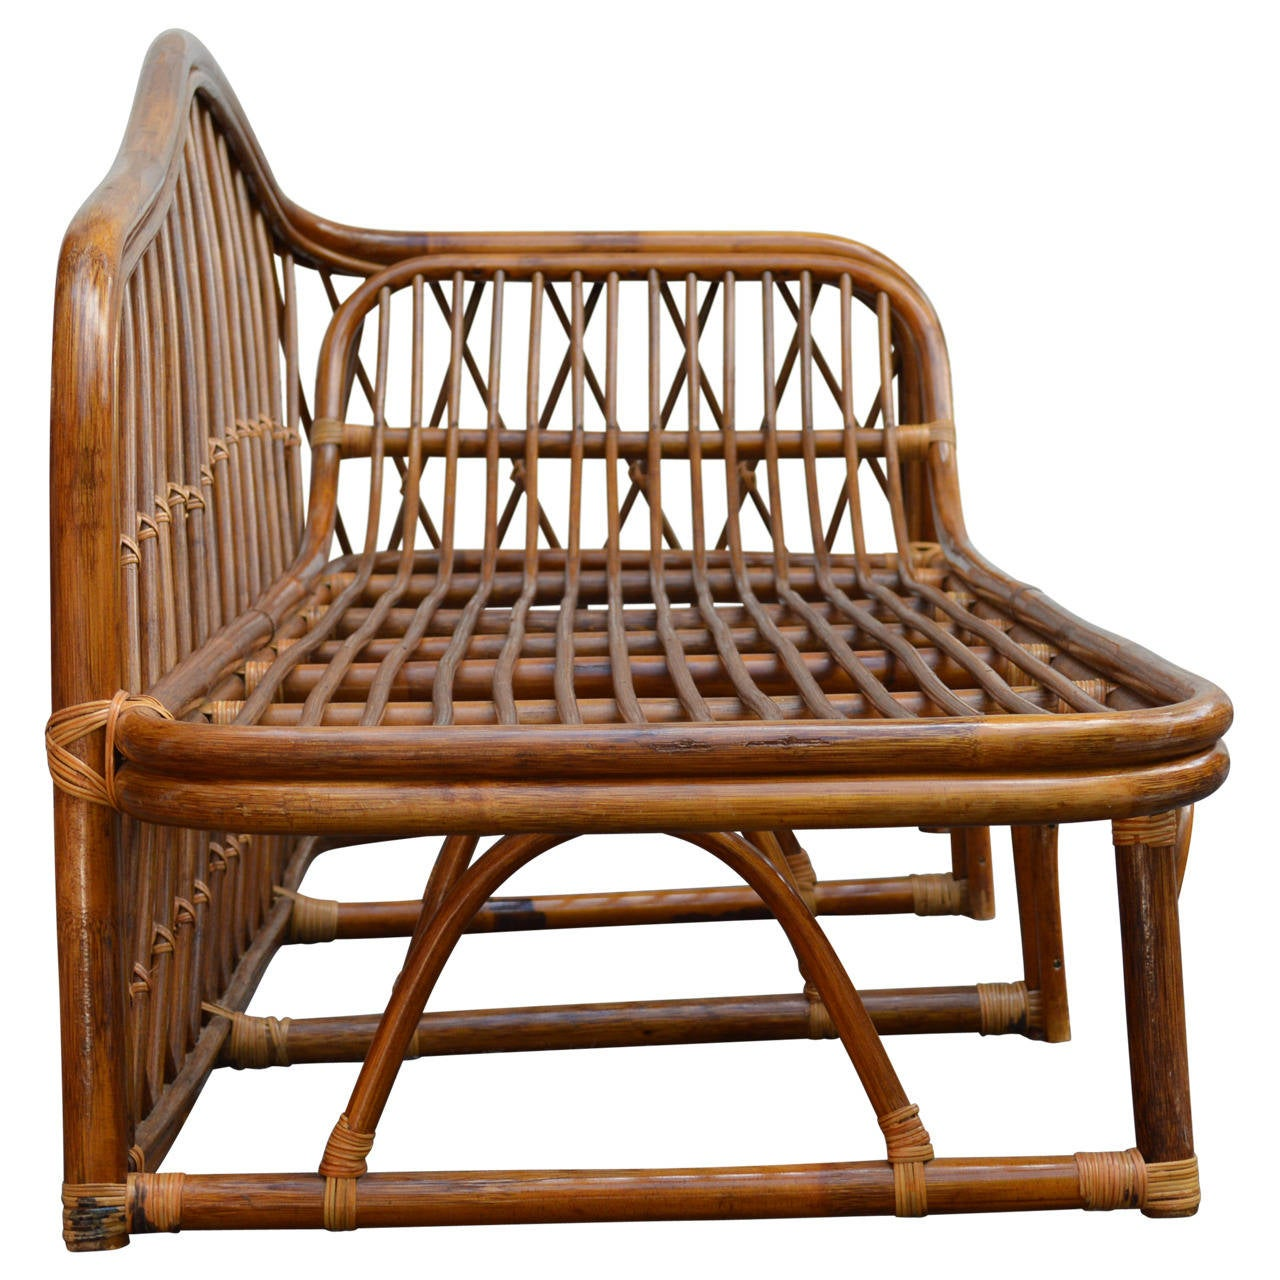 Vintage rattan chaise lounge at 1stdibs for Antique chaise longe